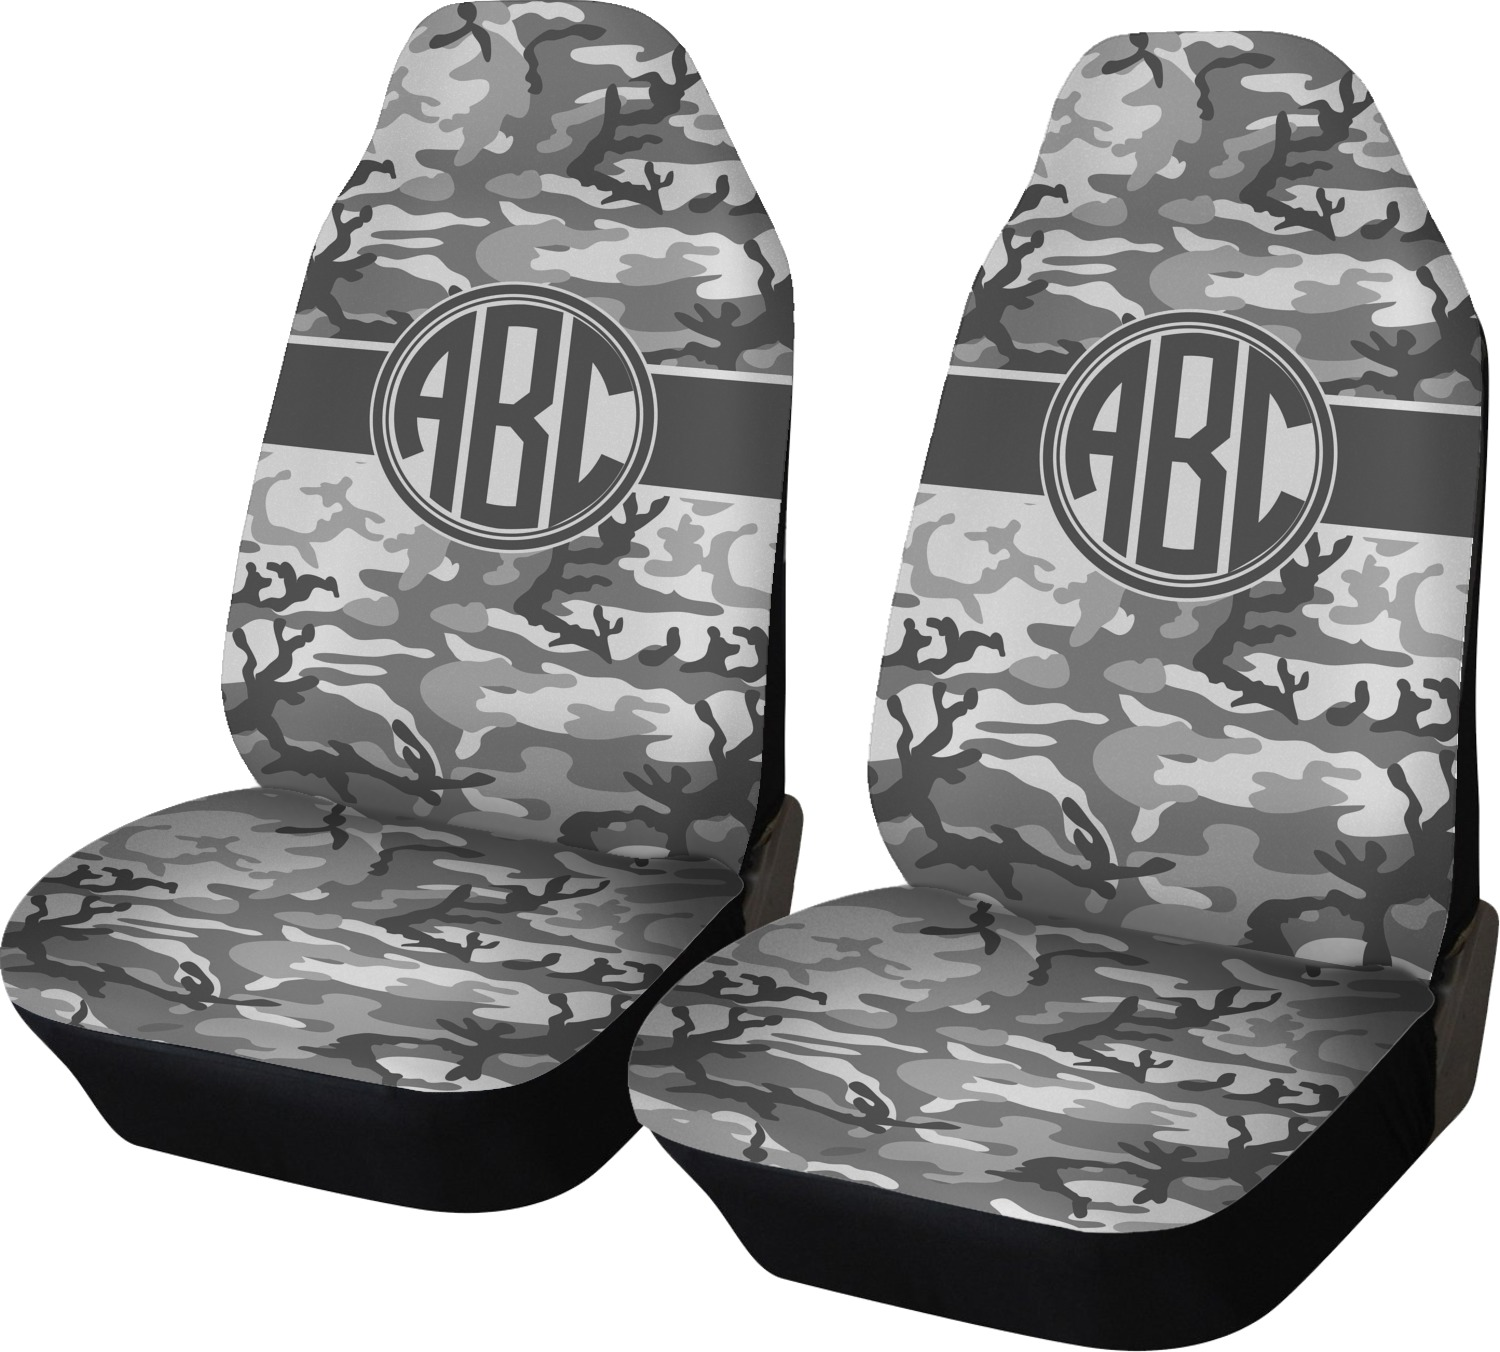 Camo Car Seat Covers Set Of Two Personalized